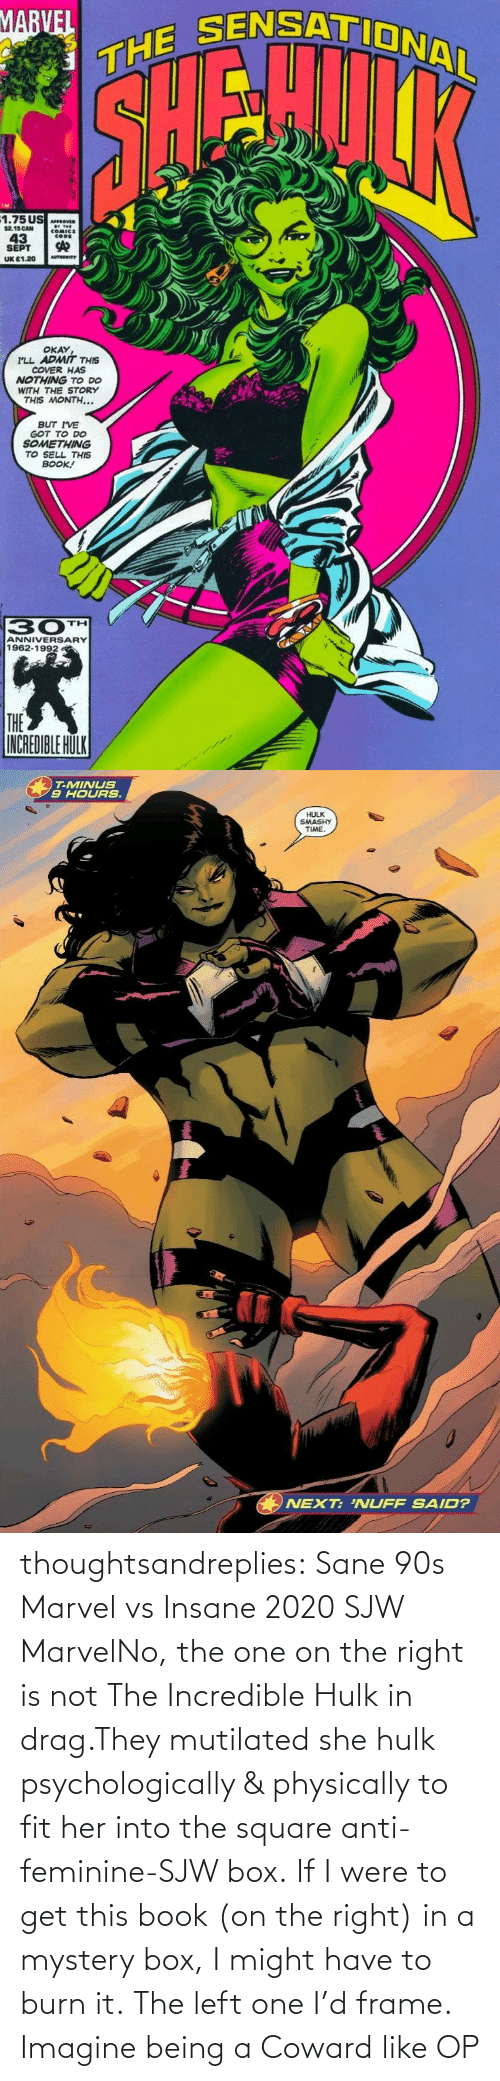 Anti: thoughtsandreplies:  Sane 90s Marvel vs Insane 2020 SJW MarvelNo, the one on the right is not The Incredible Hulk in drag.They mutilated she hulk psychologically & physically to fit her into the square anti-feminine-SJW box. If I were to get this book (on the right) in a mystery box, I might have to burn it. The left one I'd frame.    Imagine being a Coward like OP